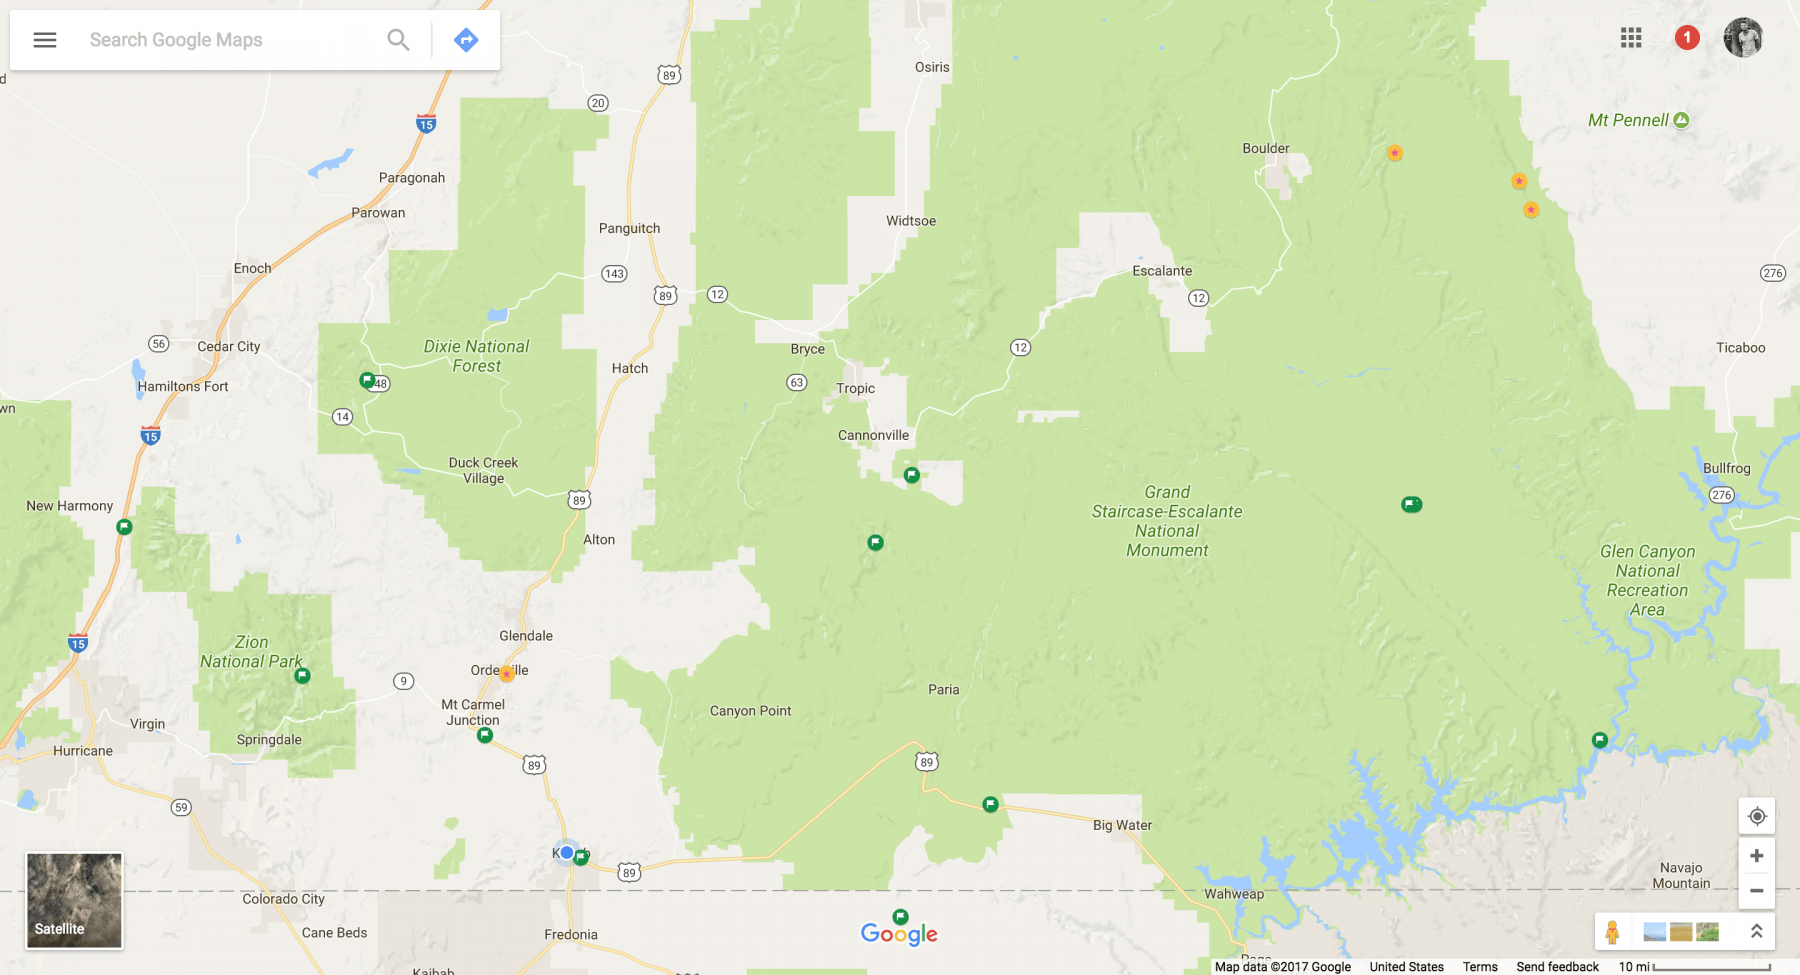 Using Google Maps to find free dispersed camping on federal land